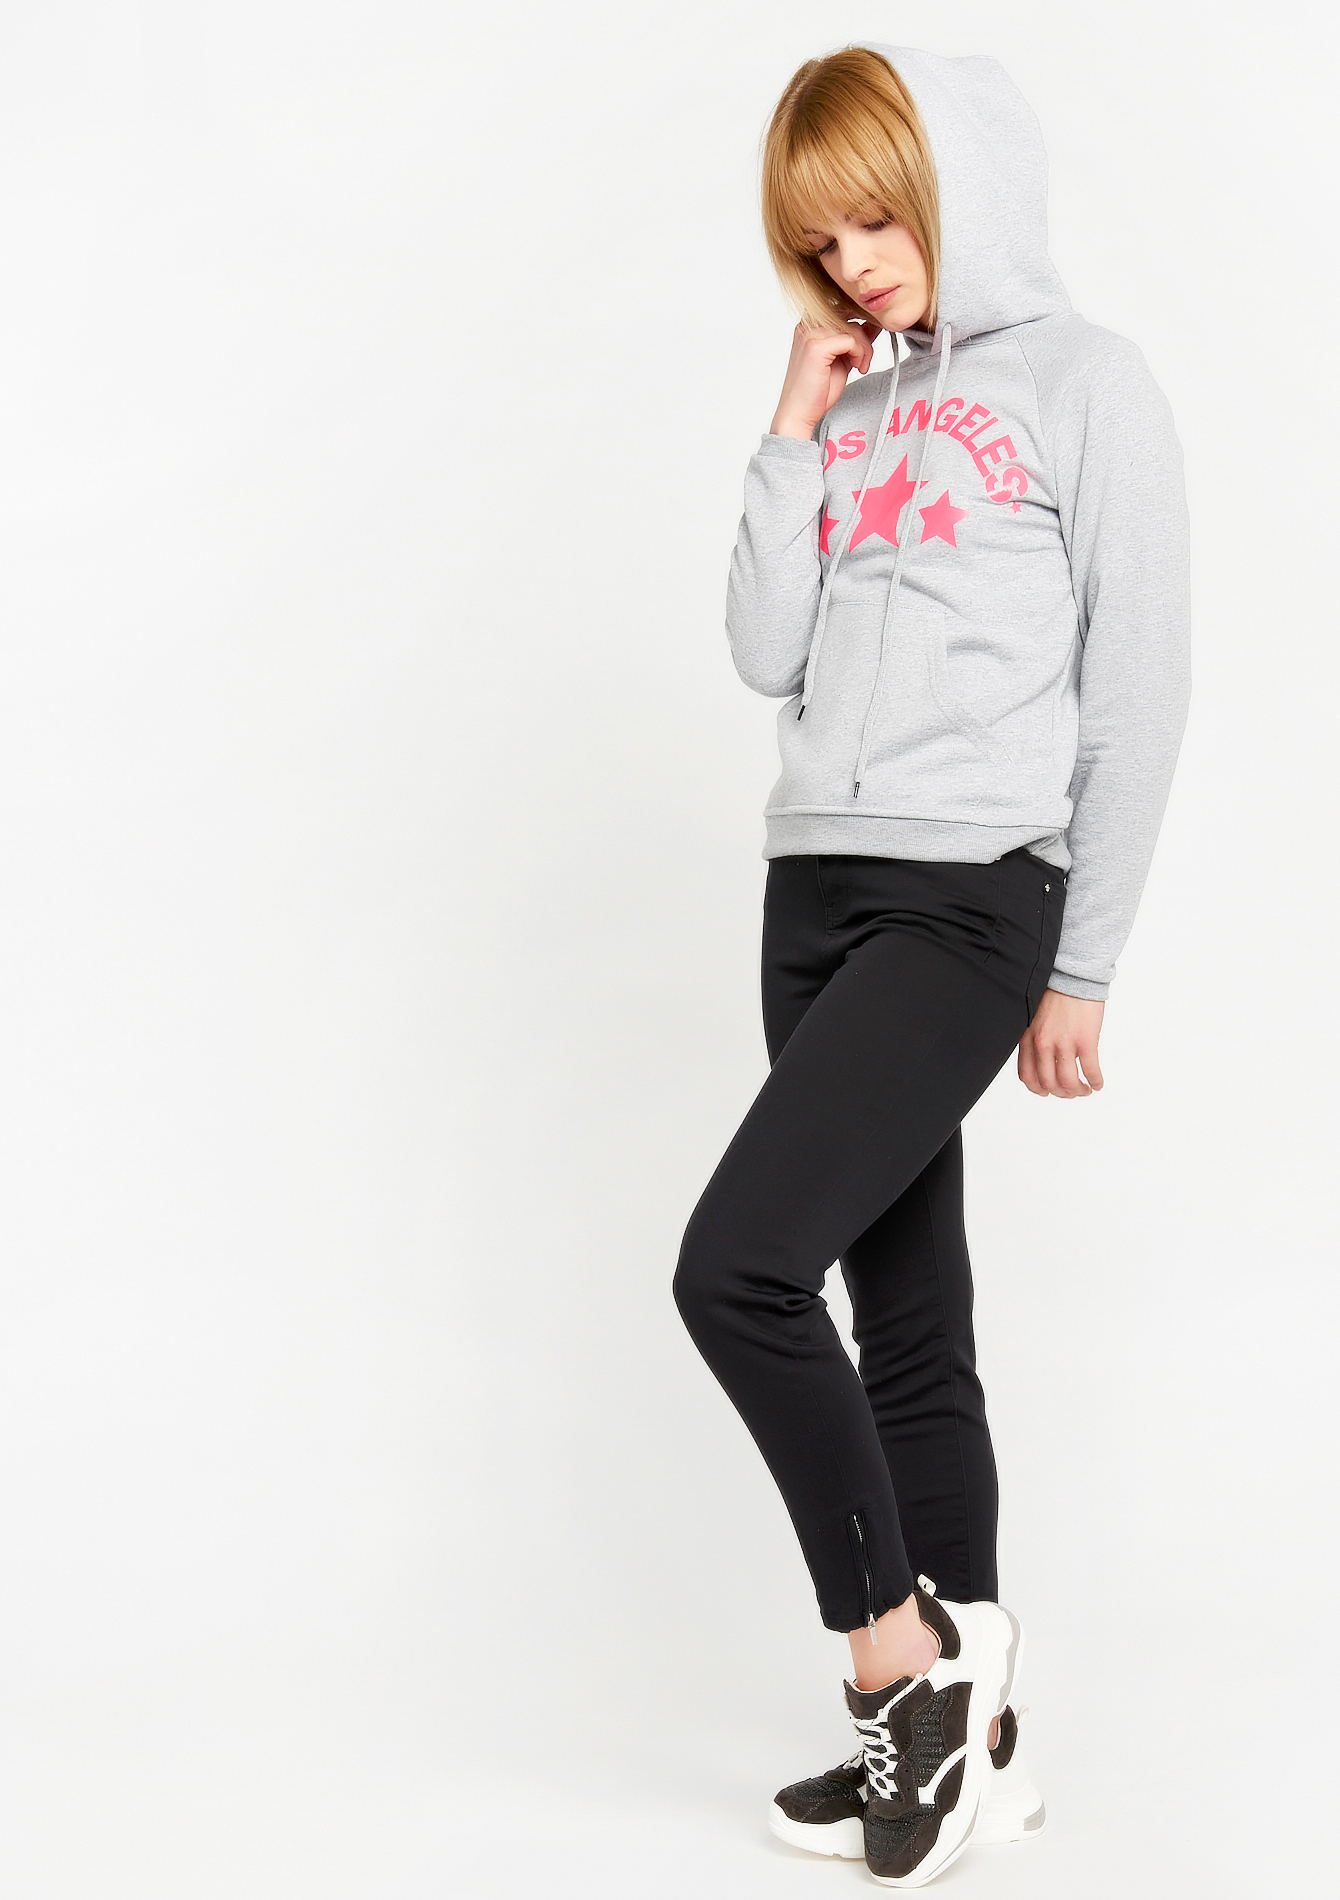 Hoody Los Angeles - FLUO PINK - 03001357_1394